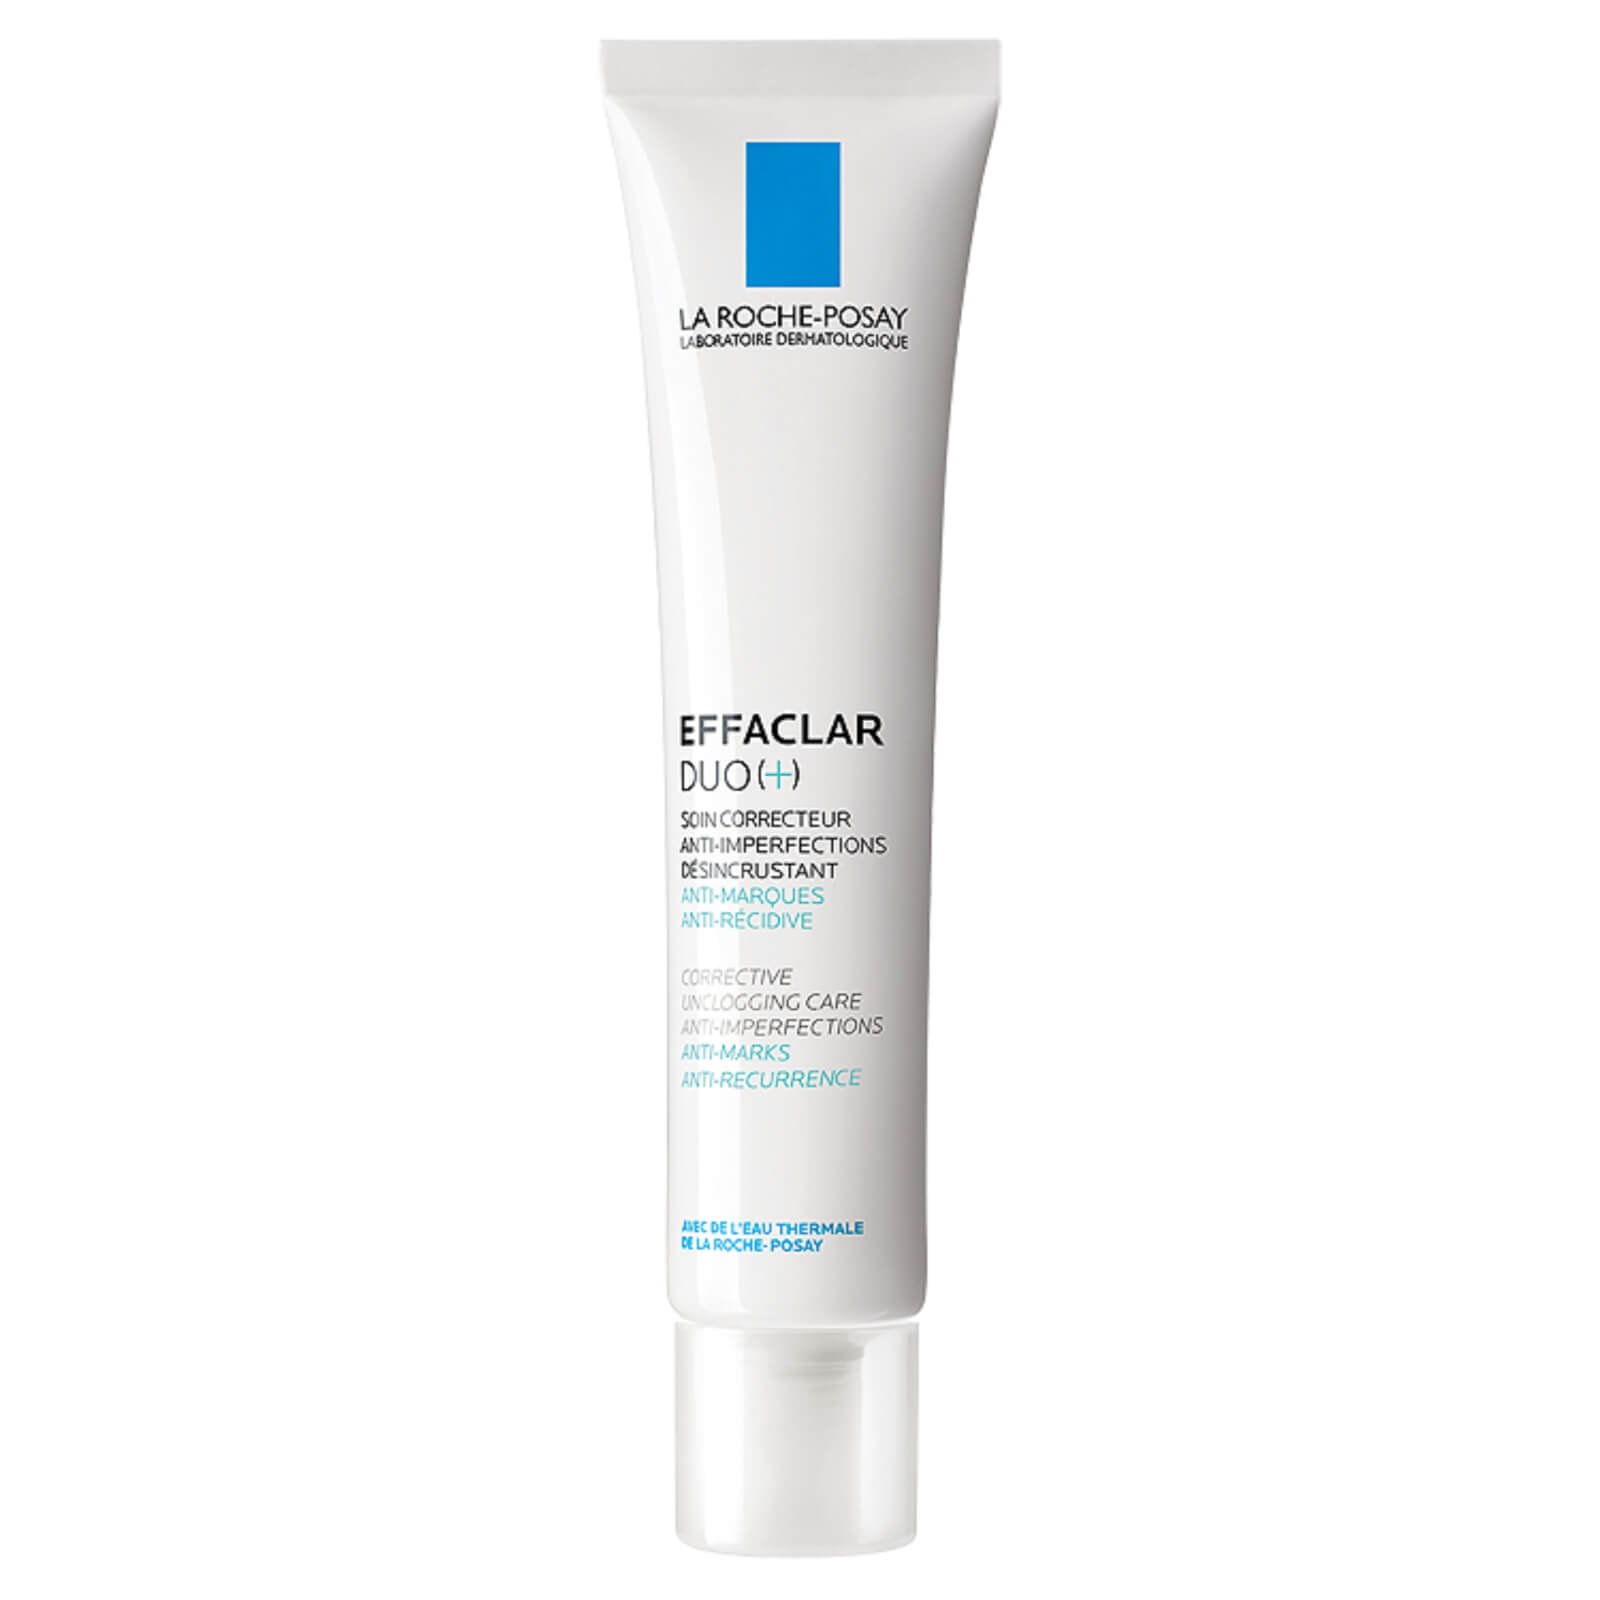 LA ROCHE-POSAY EFFACLAR DUO+ SOIN ANTI-IMPERFECTIONS 40ML